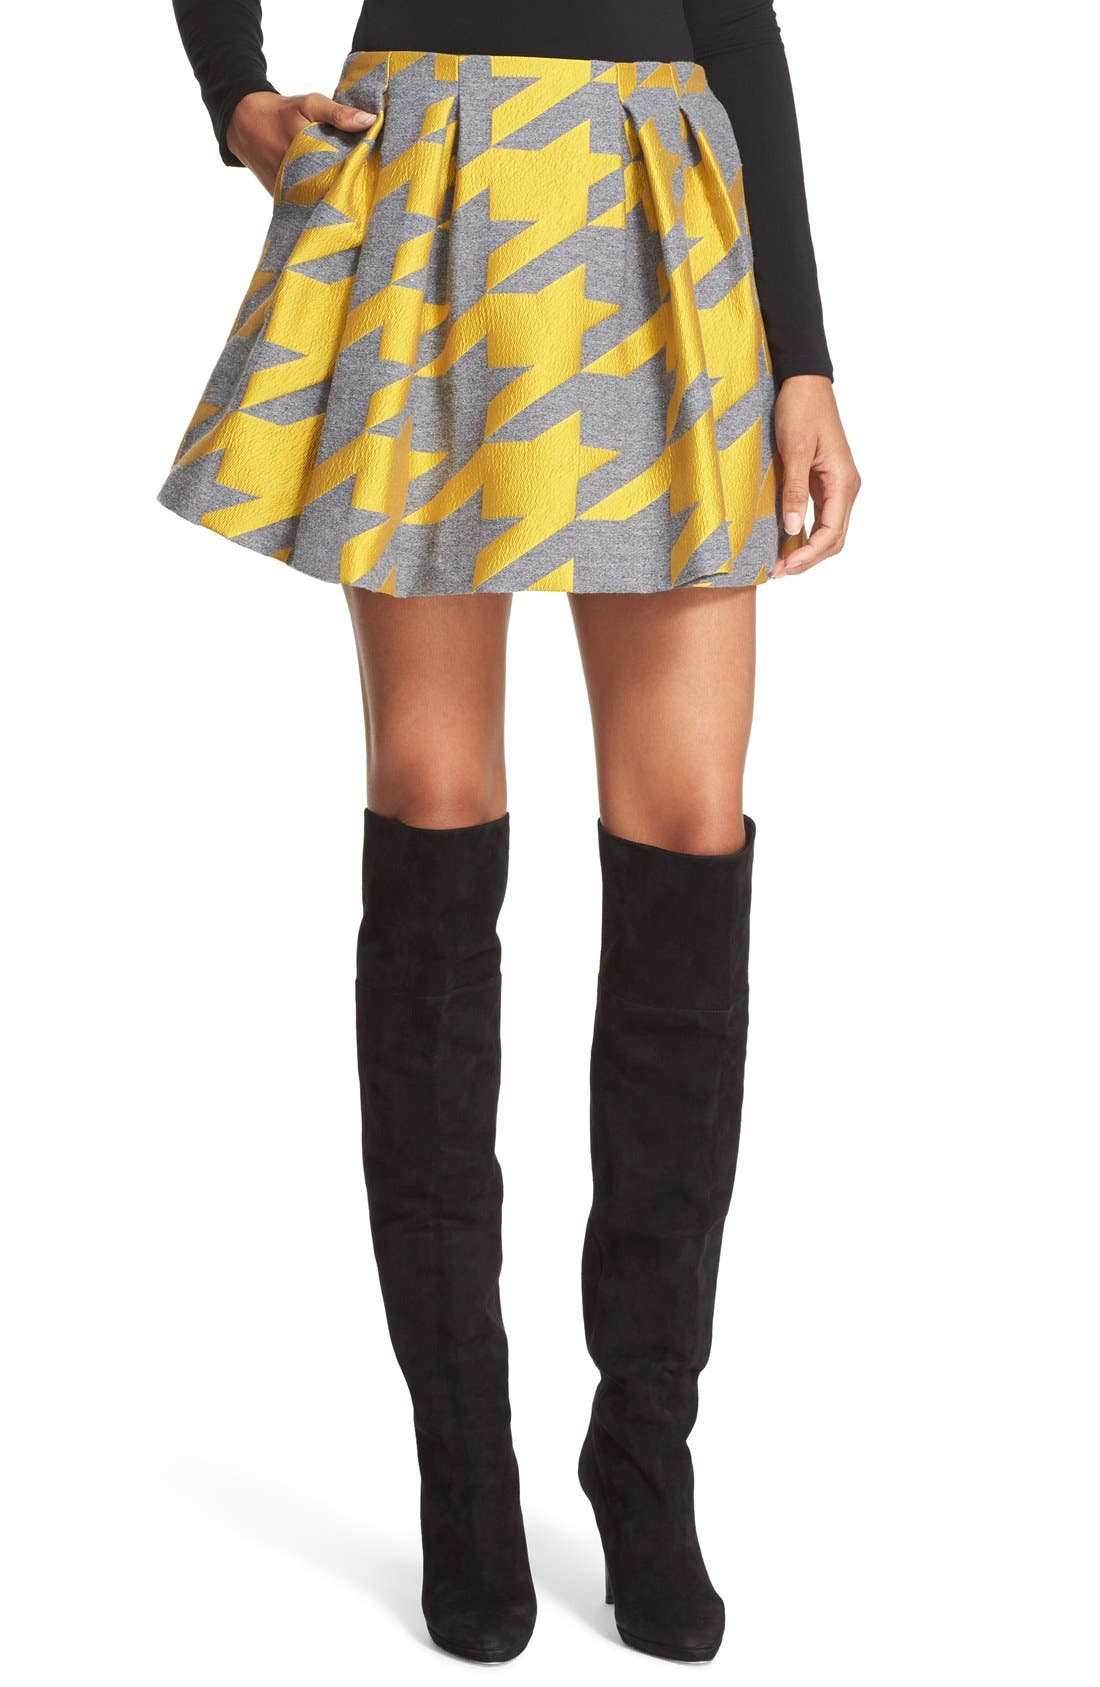 ALICE + OLIVIA,                             'Connor' Oversize Houndstooth Lampshade Skirt,                             Main thumbnail 1, color,                             700